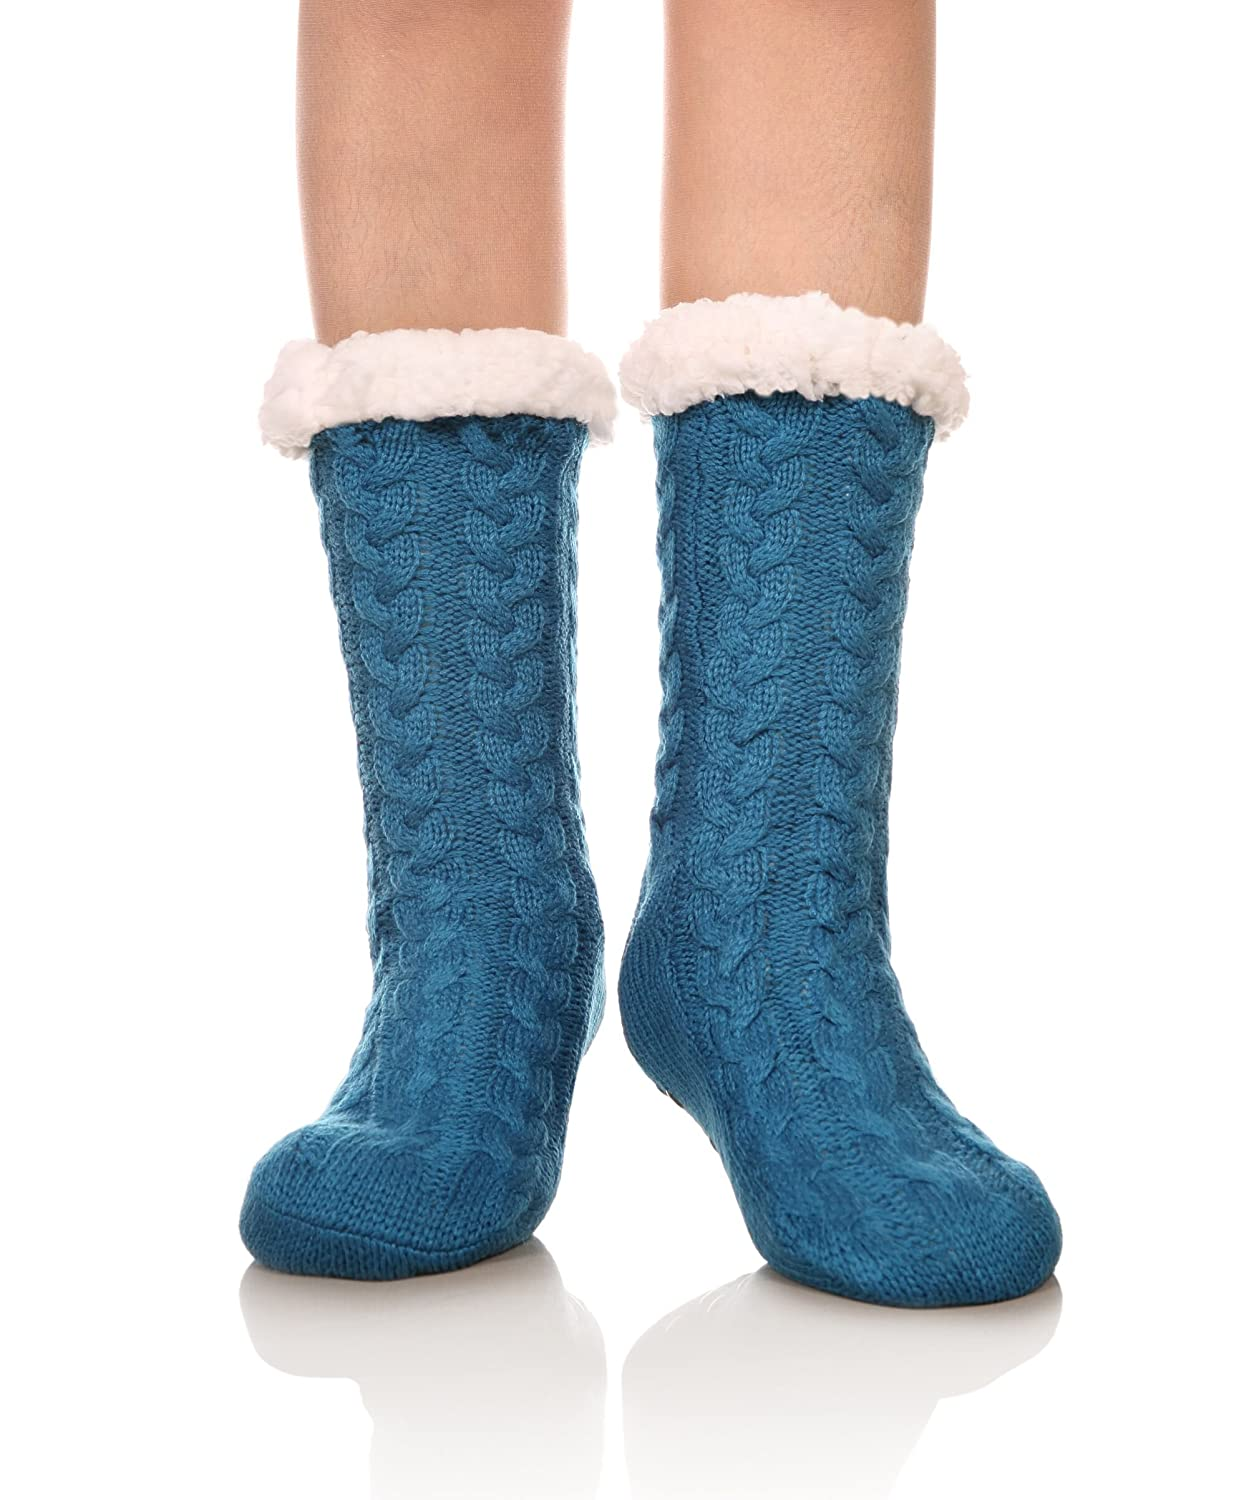 DOFUN Womens Girl Soft Knee High Warm Winter Fuzzy Fleece Lined Slipper Socks